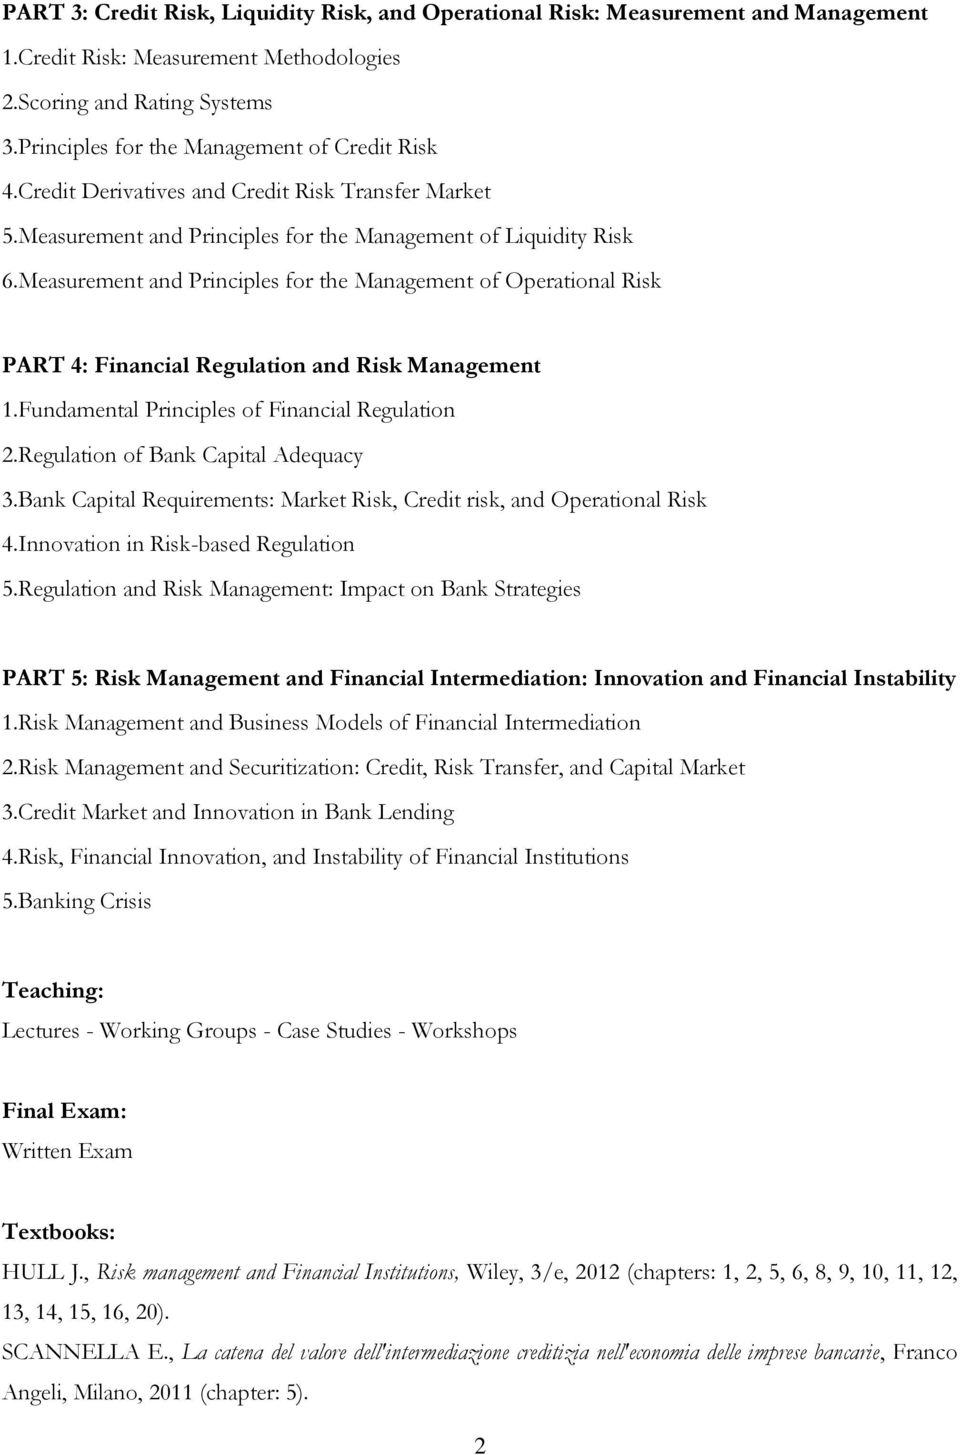 Measurement and Principles for the Management of Operational Risk PART 4: Financial Regulation and Risk Management 1.Fundamental Principles of Financial Regulation 2.